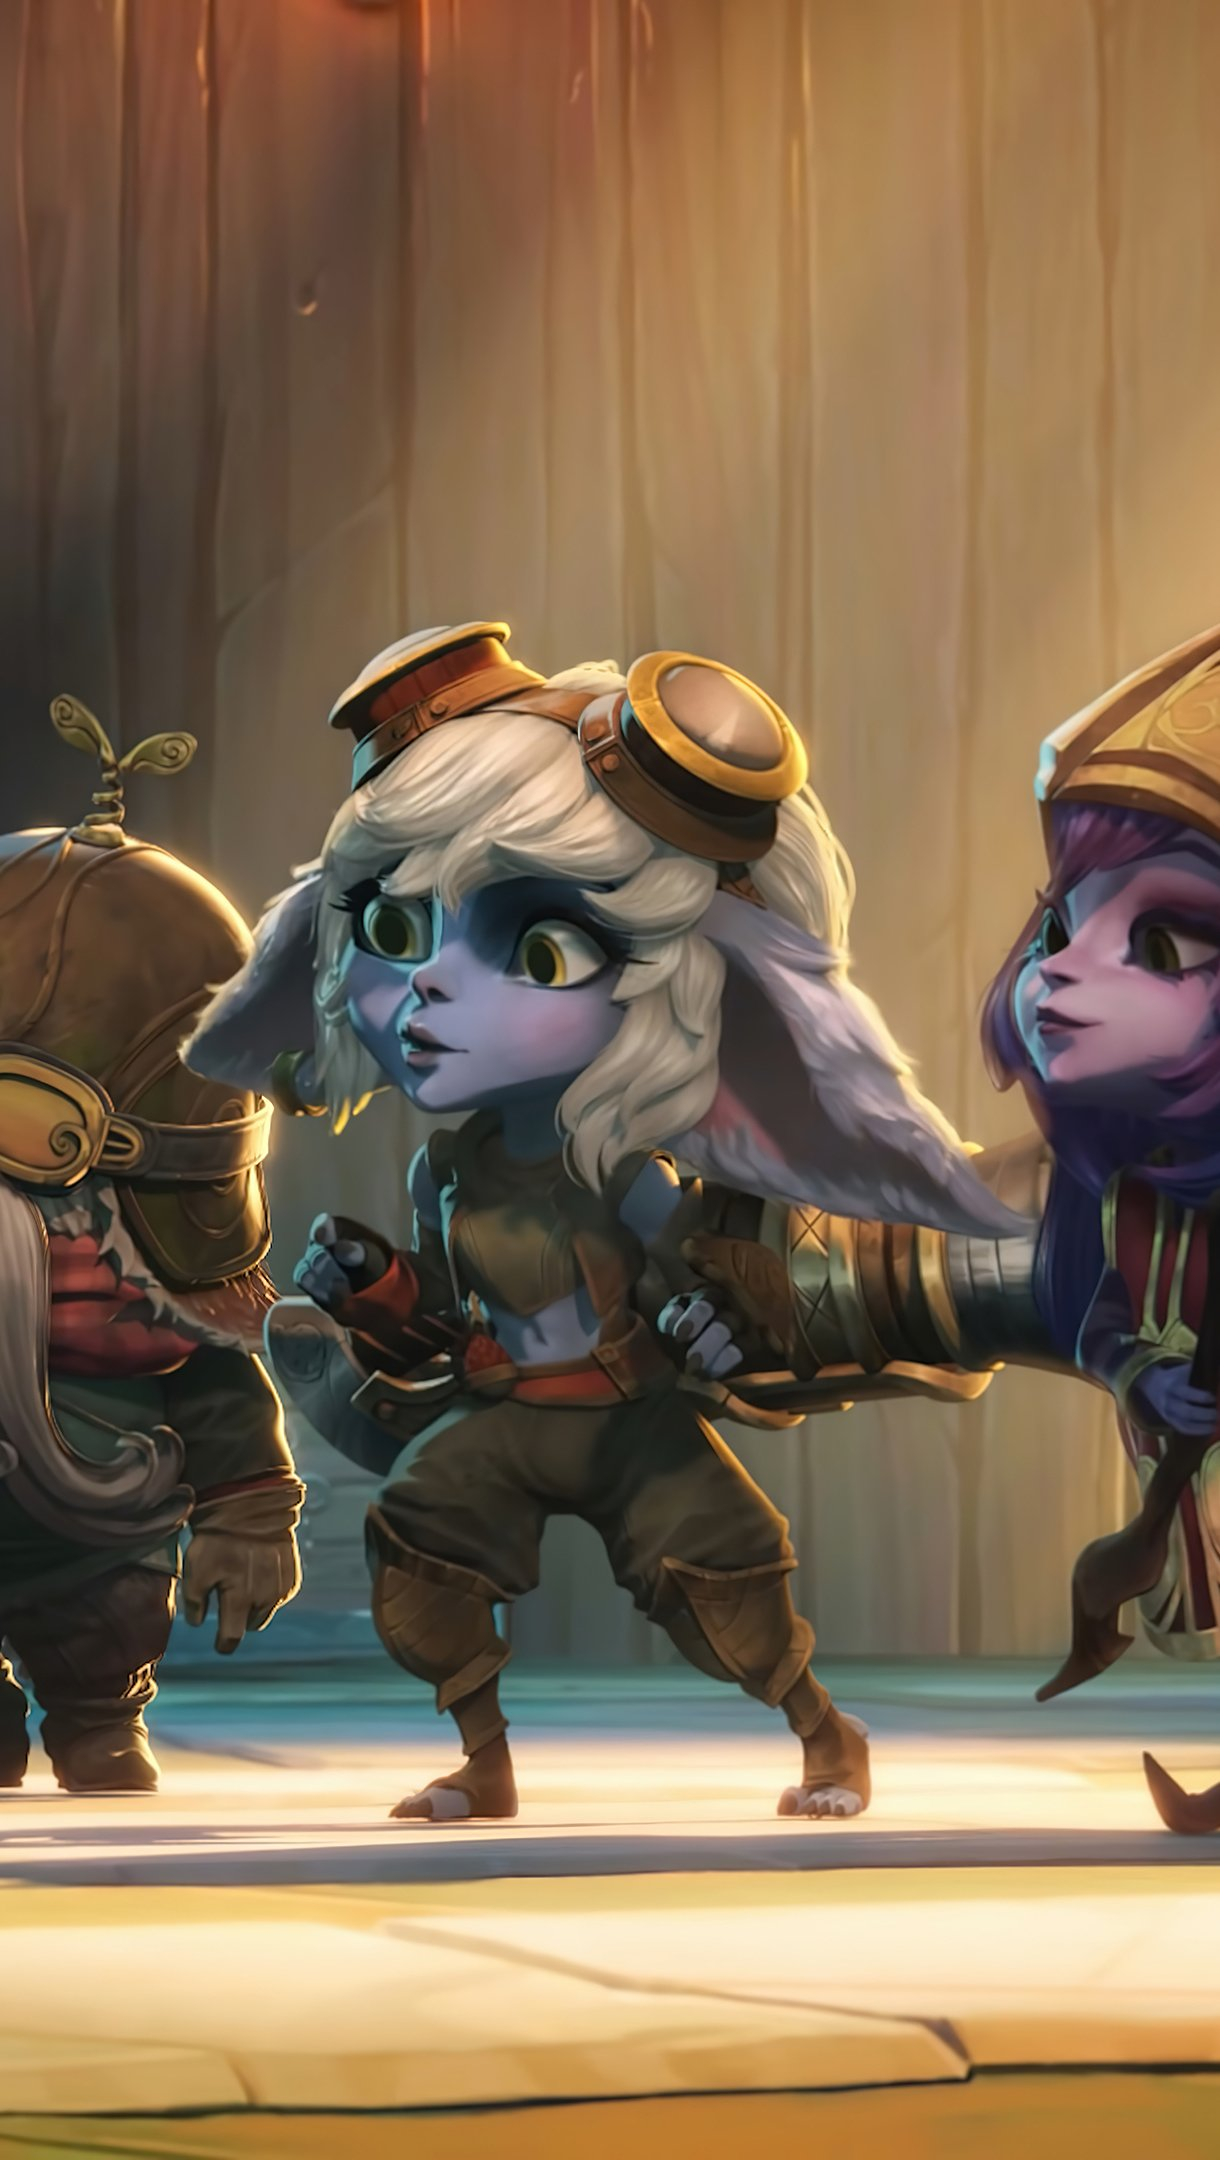 Wallpaper Teemo, Corki, Tristana and Lulu from League of Legends Vertical